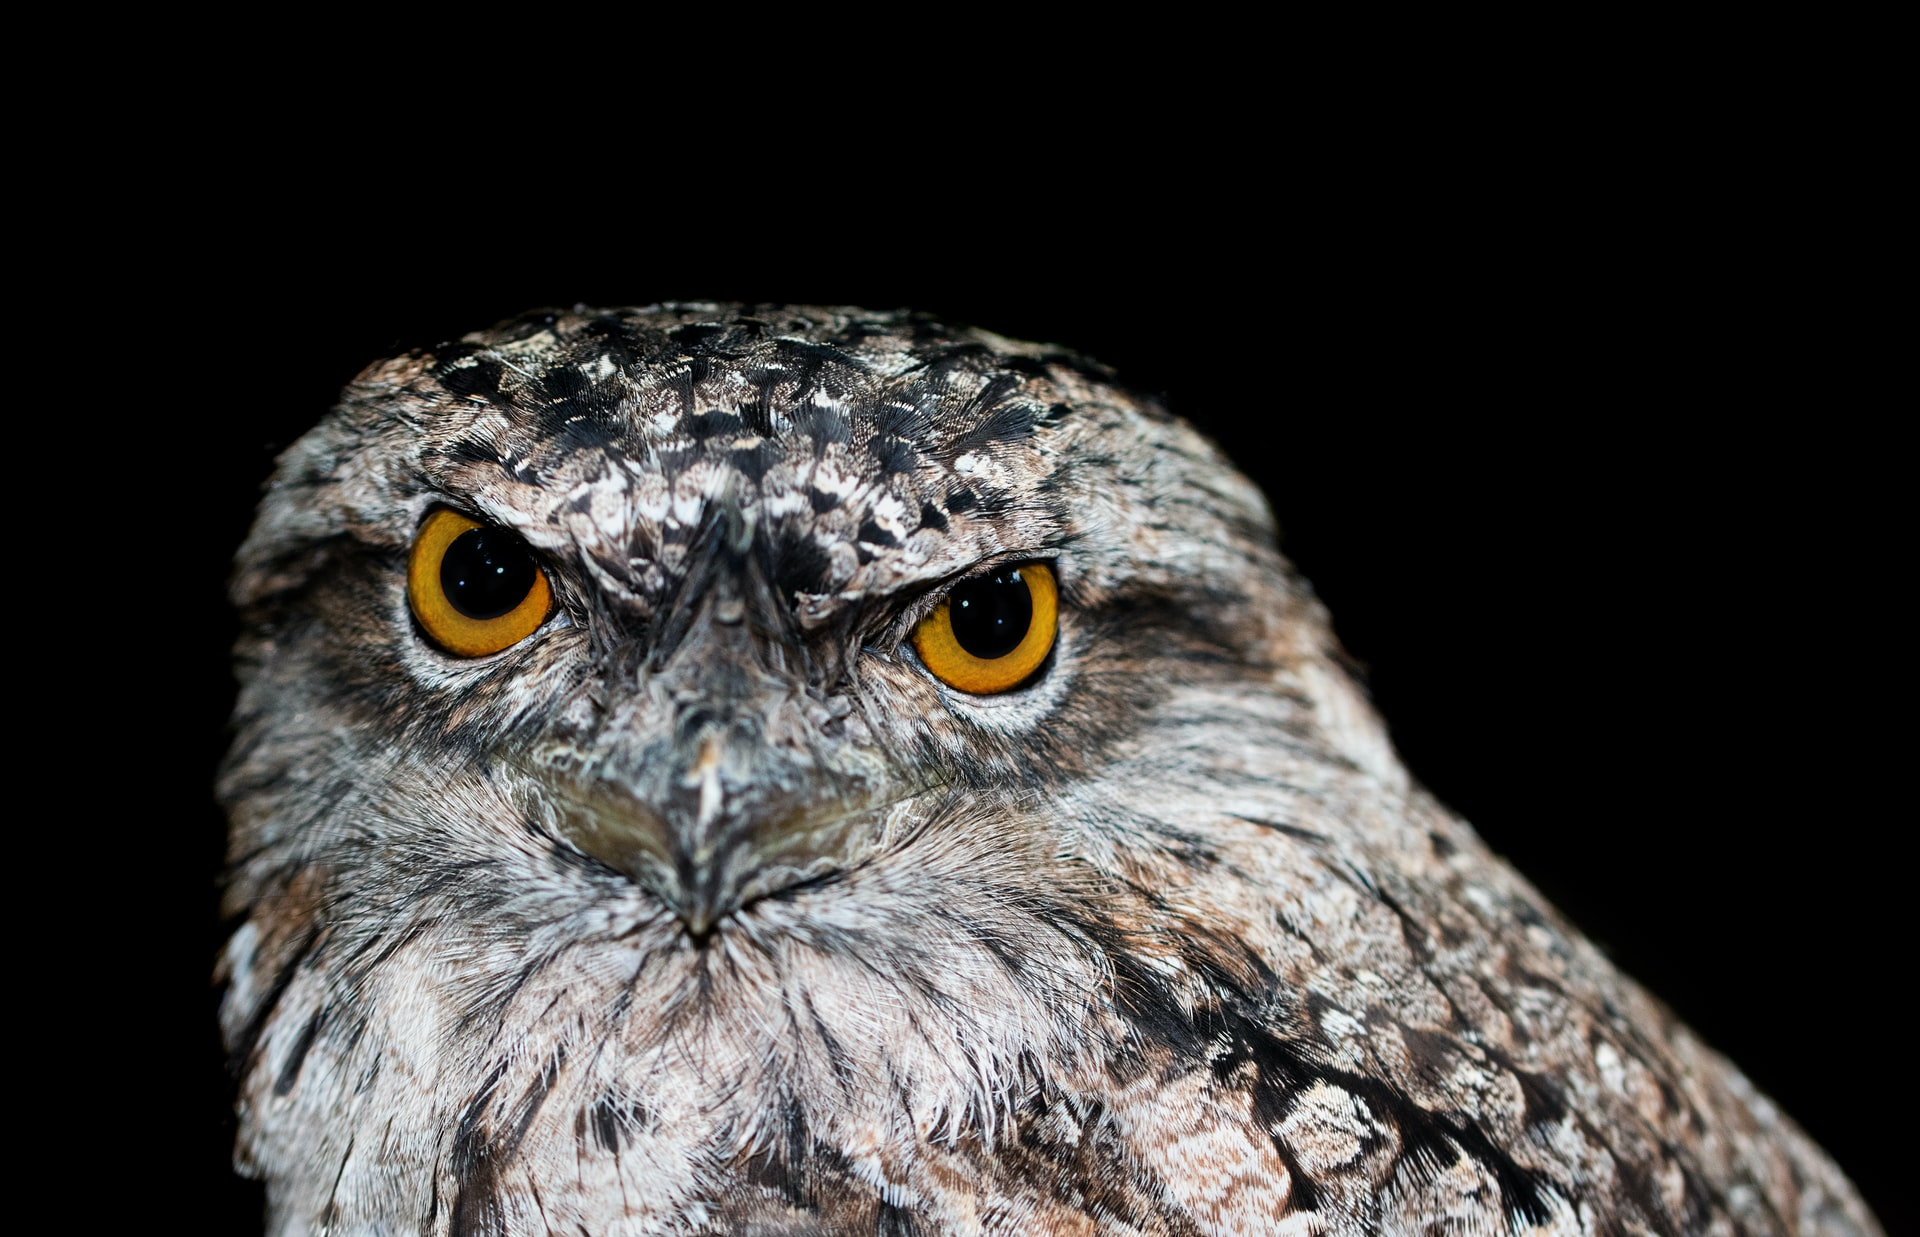 This image shows an owl with bright orange eyes with a dark background. The owl is glaring at the camera.